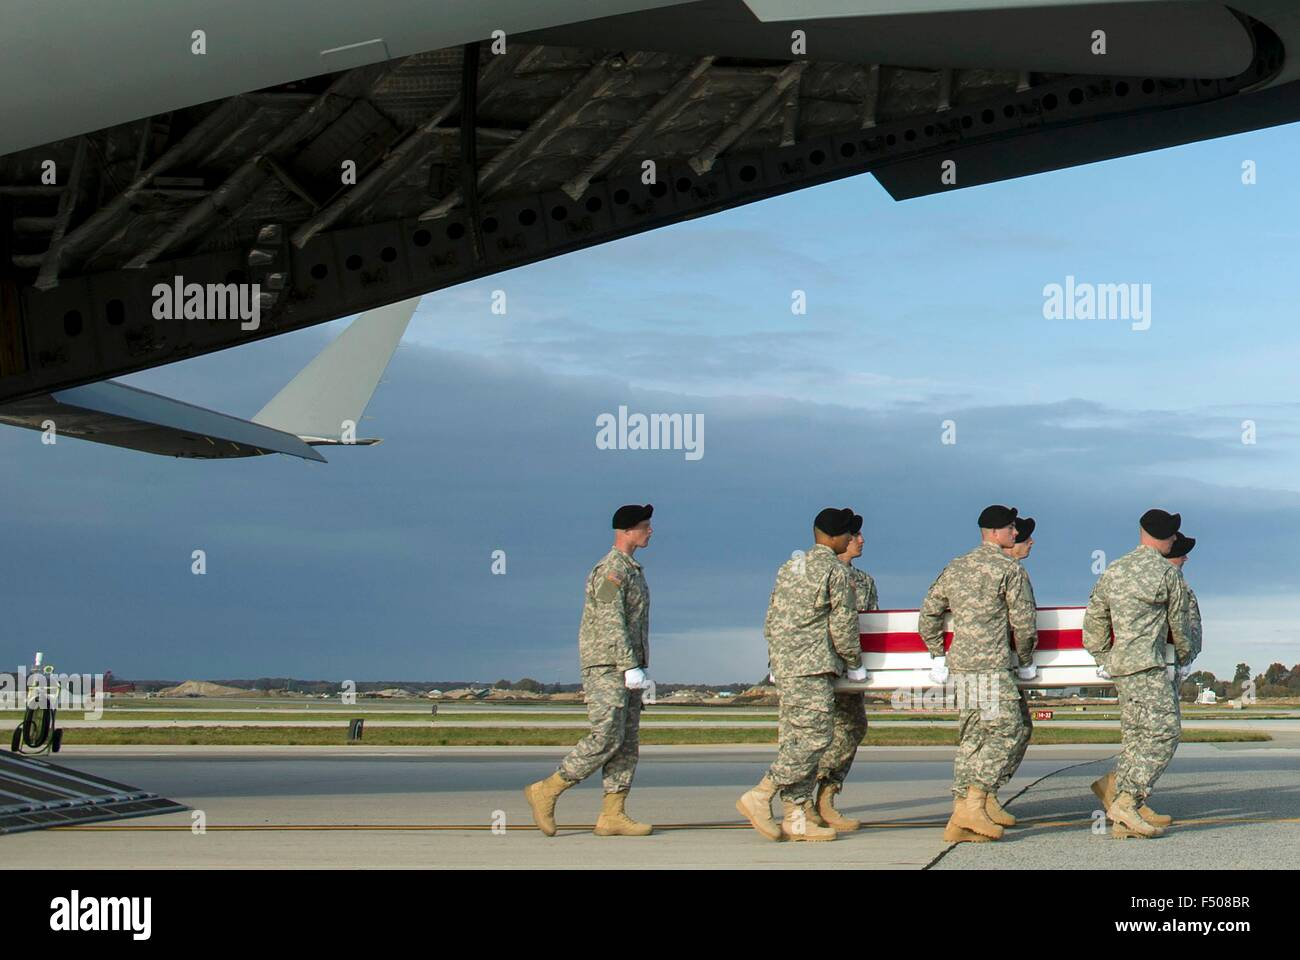 A US Army carry team transfers the remains of U.S. Army Master Sgt. Joshua L. Wheeler killed in action in Iraq during - Stock Image